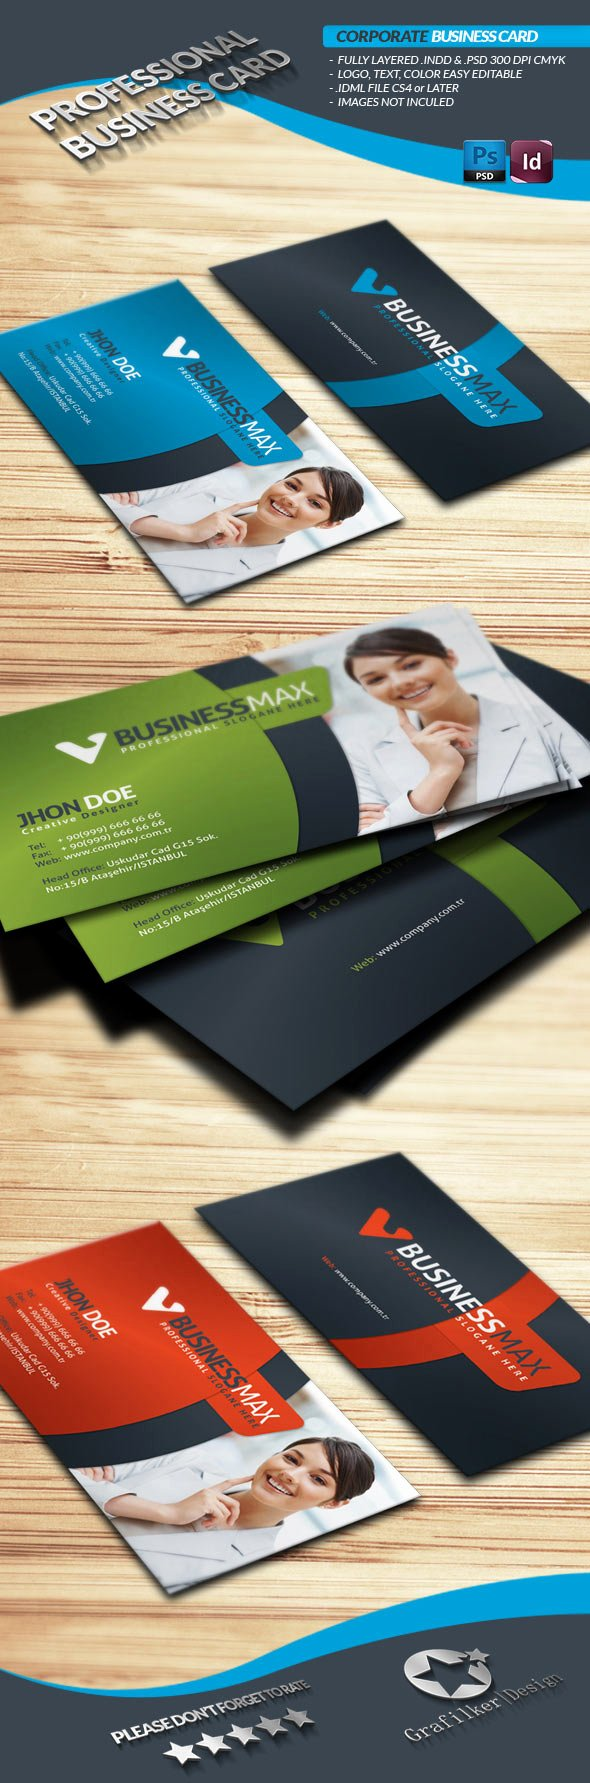 Illustrator Business Card Template Awesome 15 Premium Business Card Templates In Shop